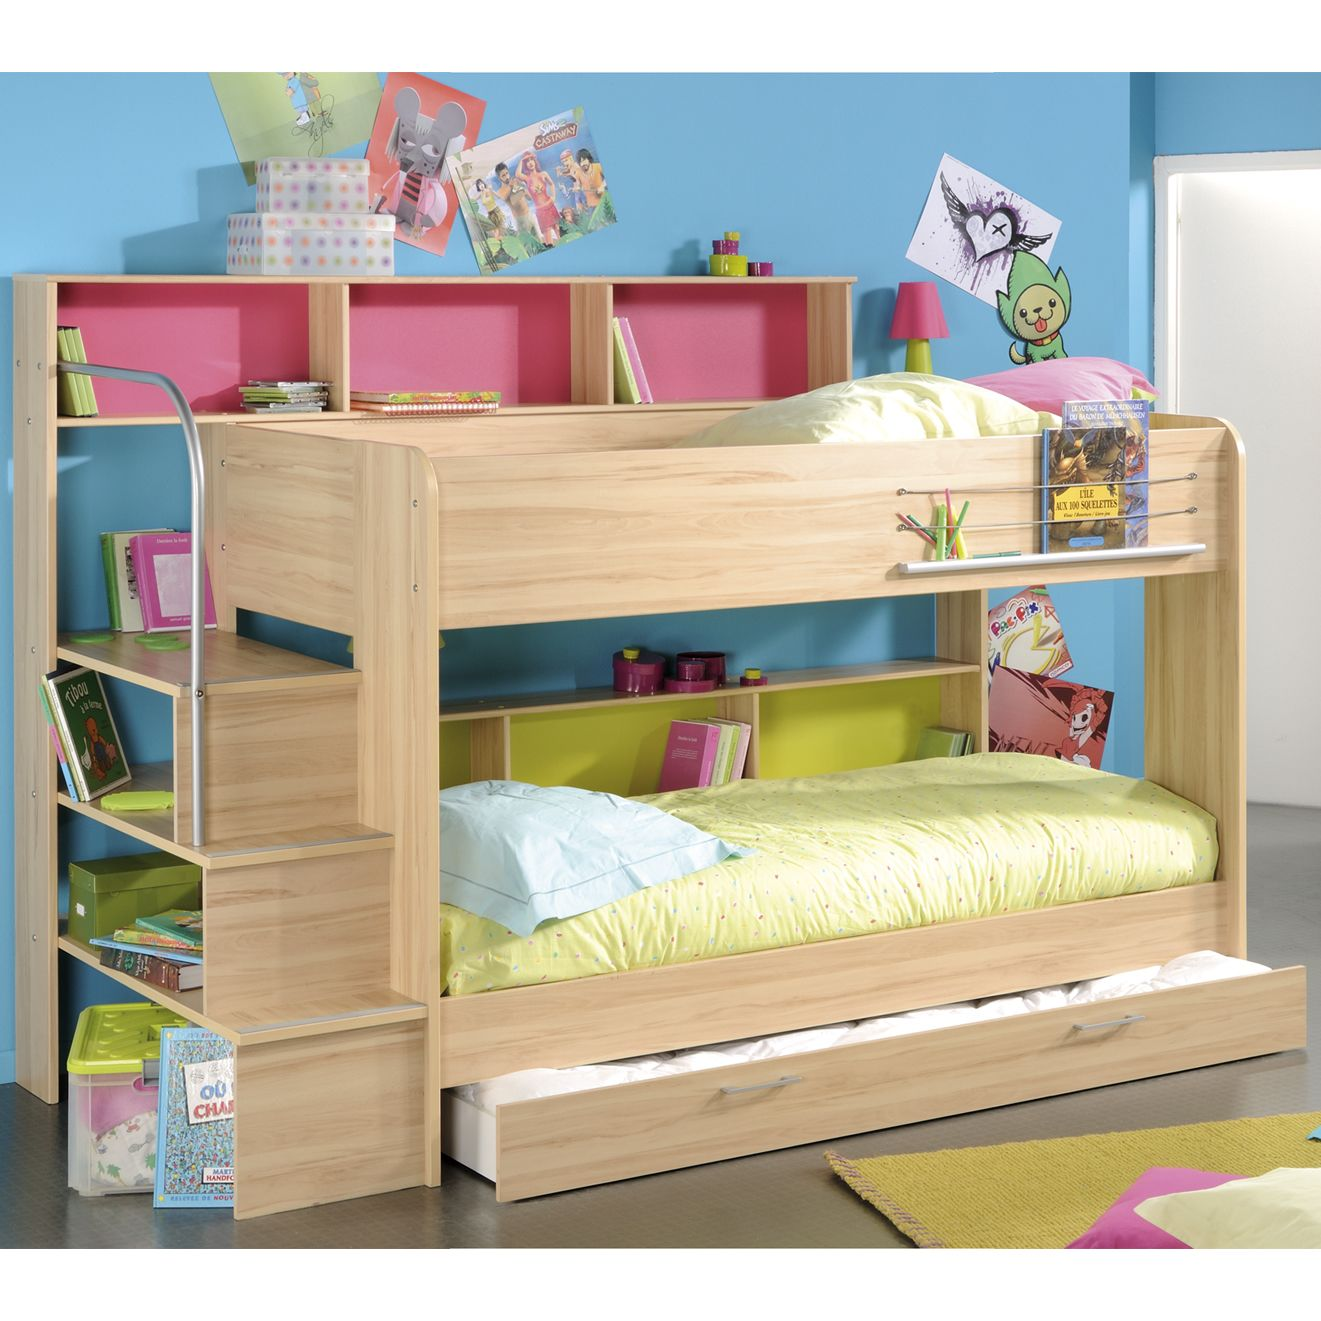 Furniture, Fancy Decorating Children Loft Bed Plans For Little Girls Bedroom  With Wooden Frame And